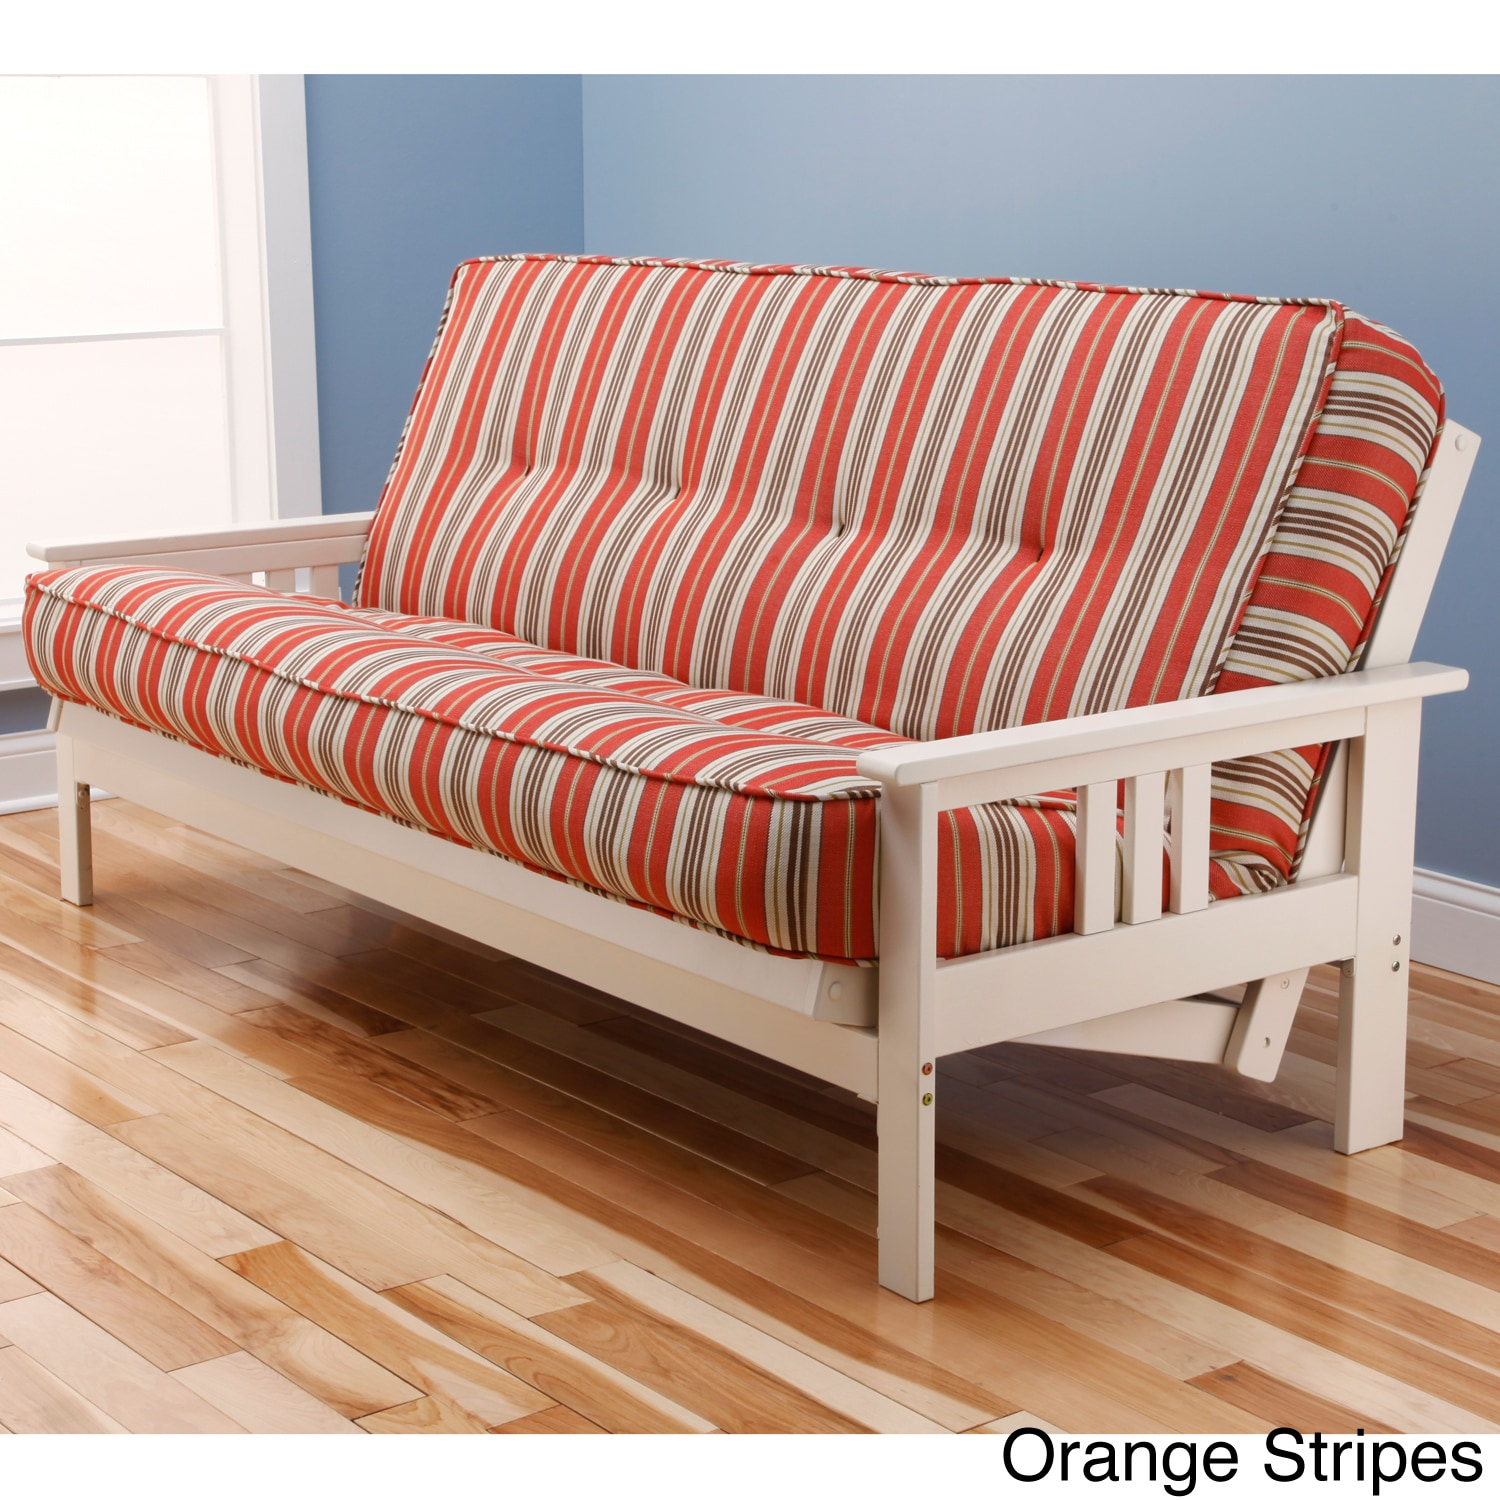 Somette Beli Mont Multi Flex Antique White Wood Futon Frame with